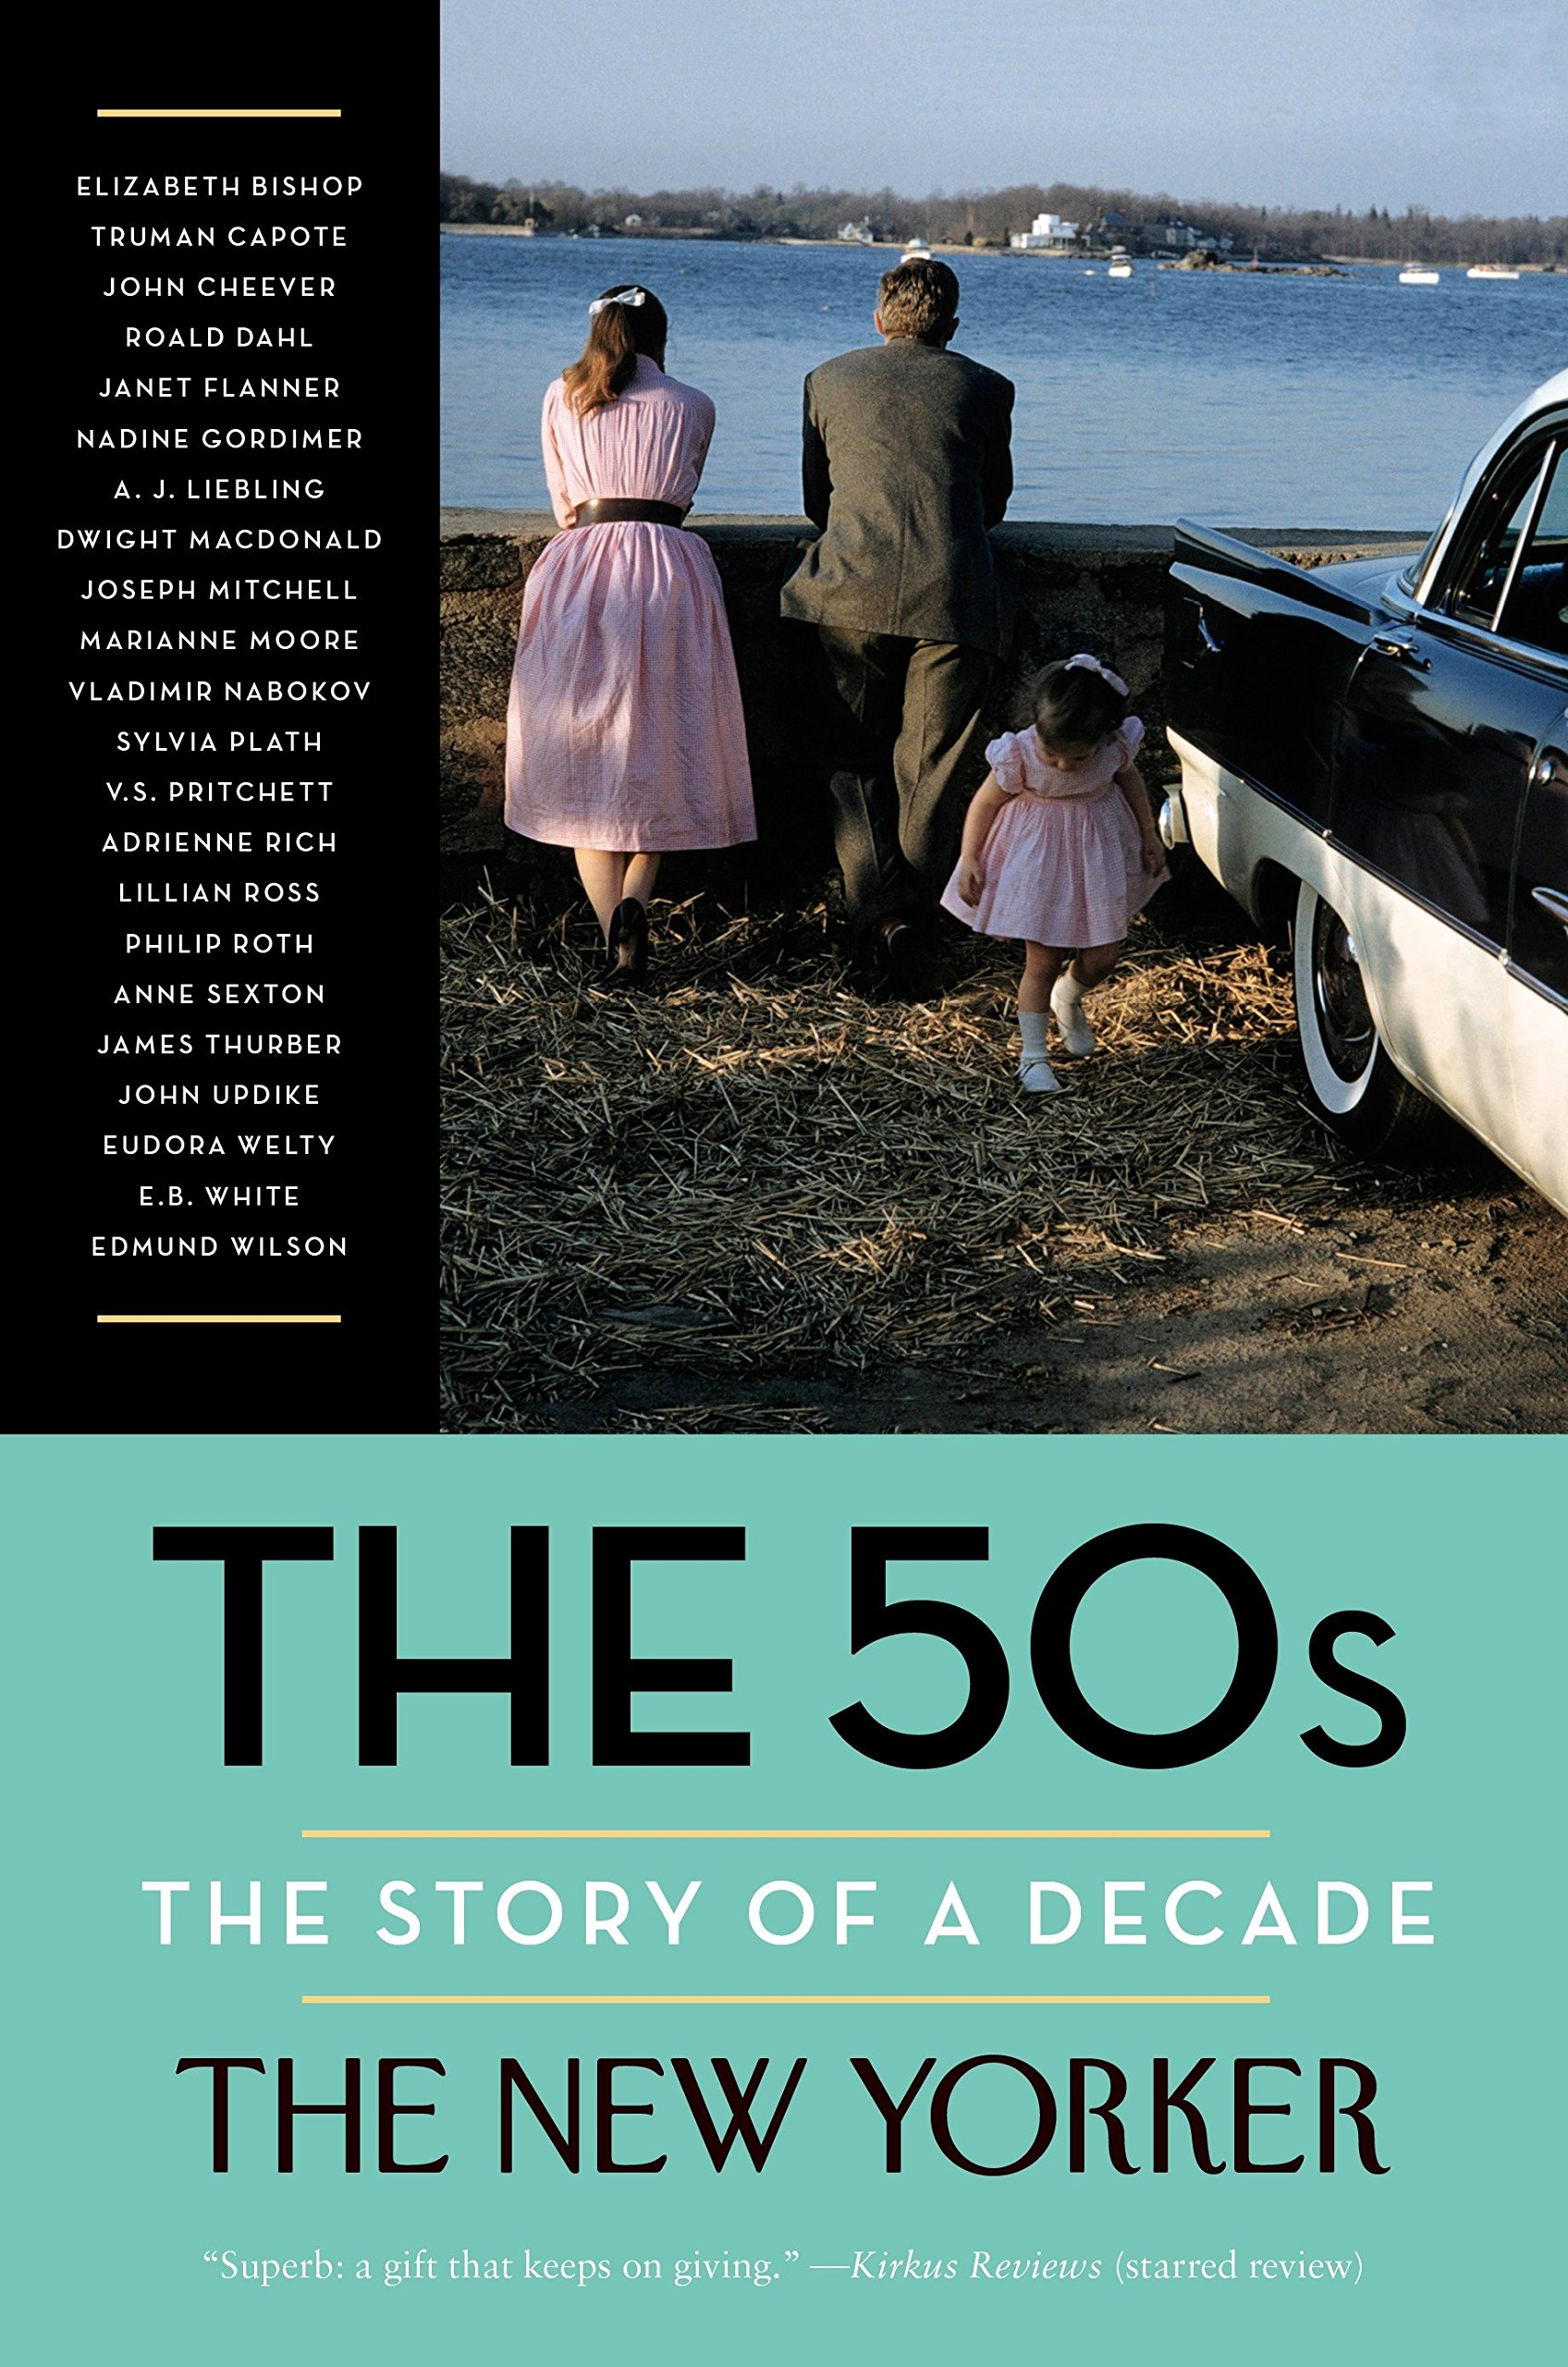 The 50s: The Story of a Decade (New Yorker: The Story of a Decade): The New  Yorker Magazine, Henry Finder, David Remnick, Elizabeth Bishop, Truman  Capote: ...